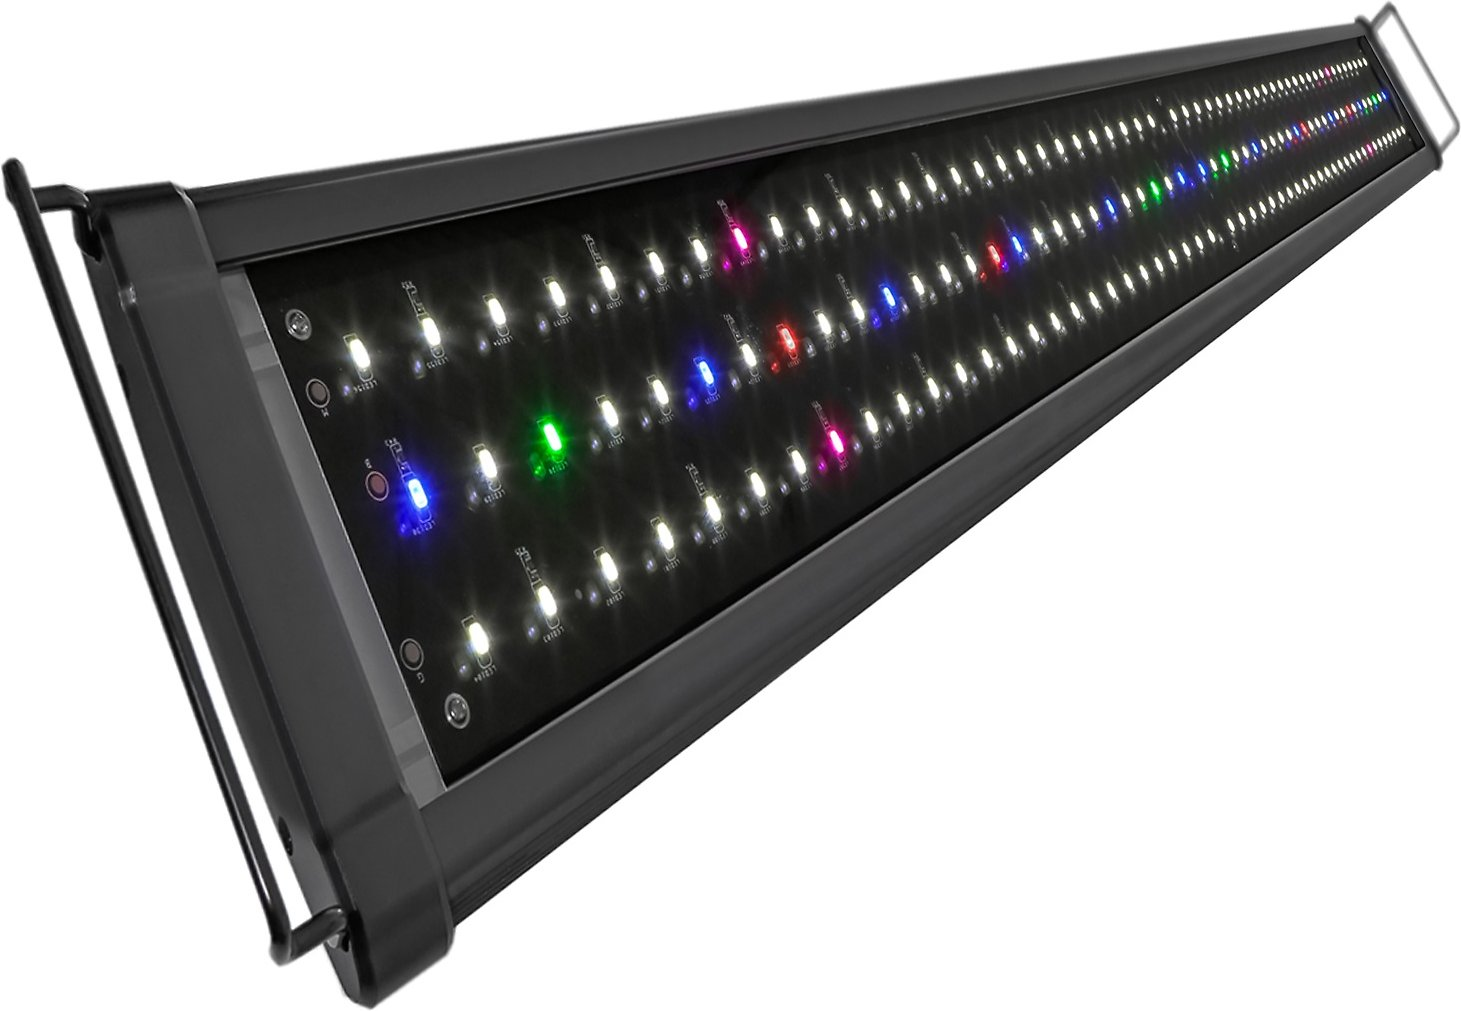 Best LED Lighting for Reef Tank 2020 1